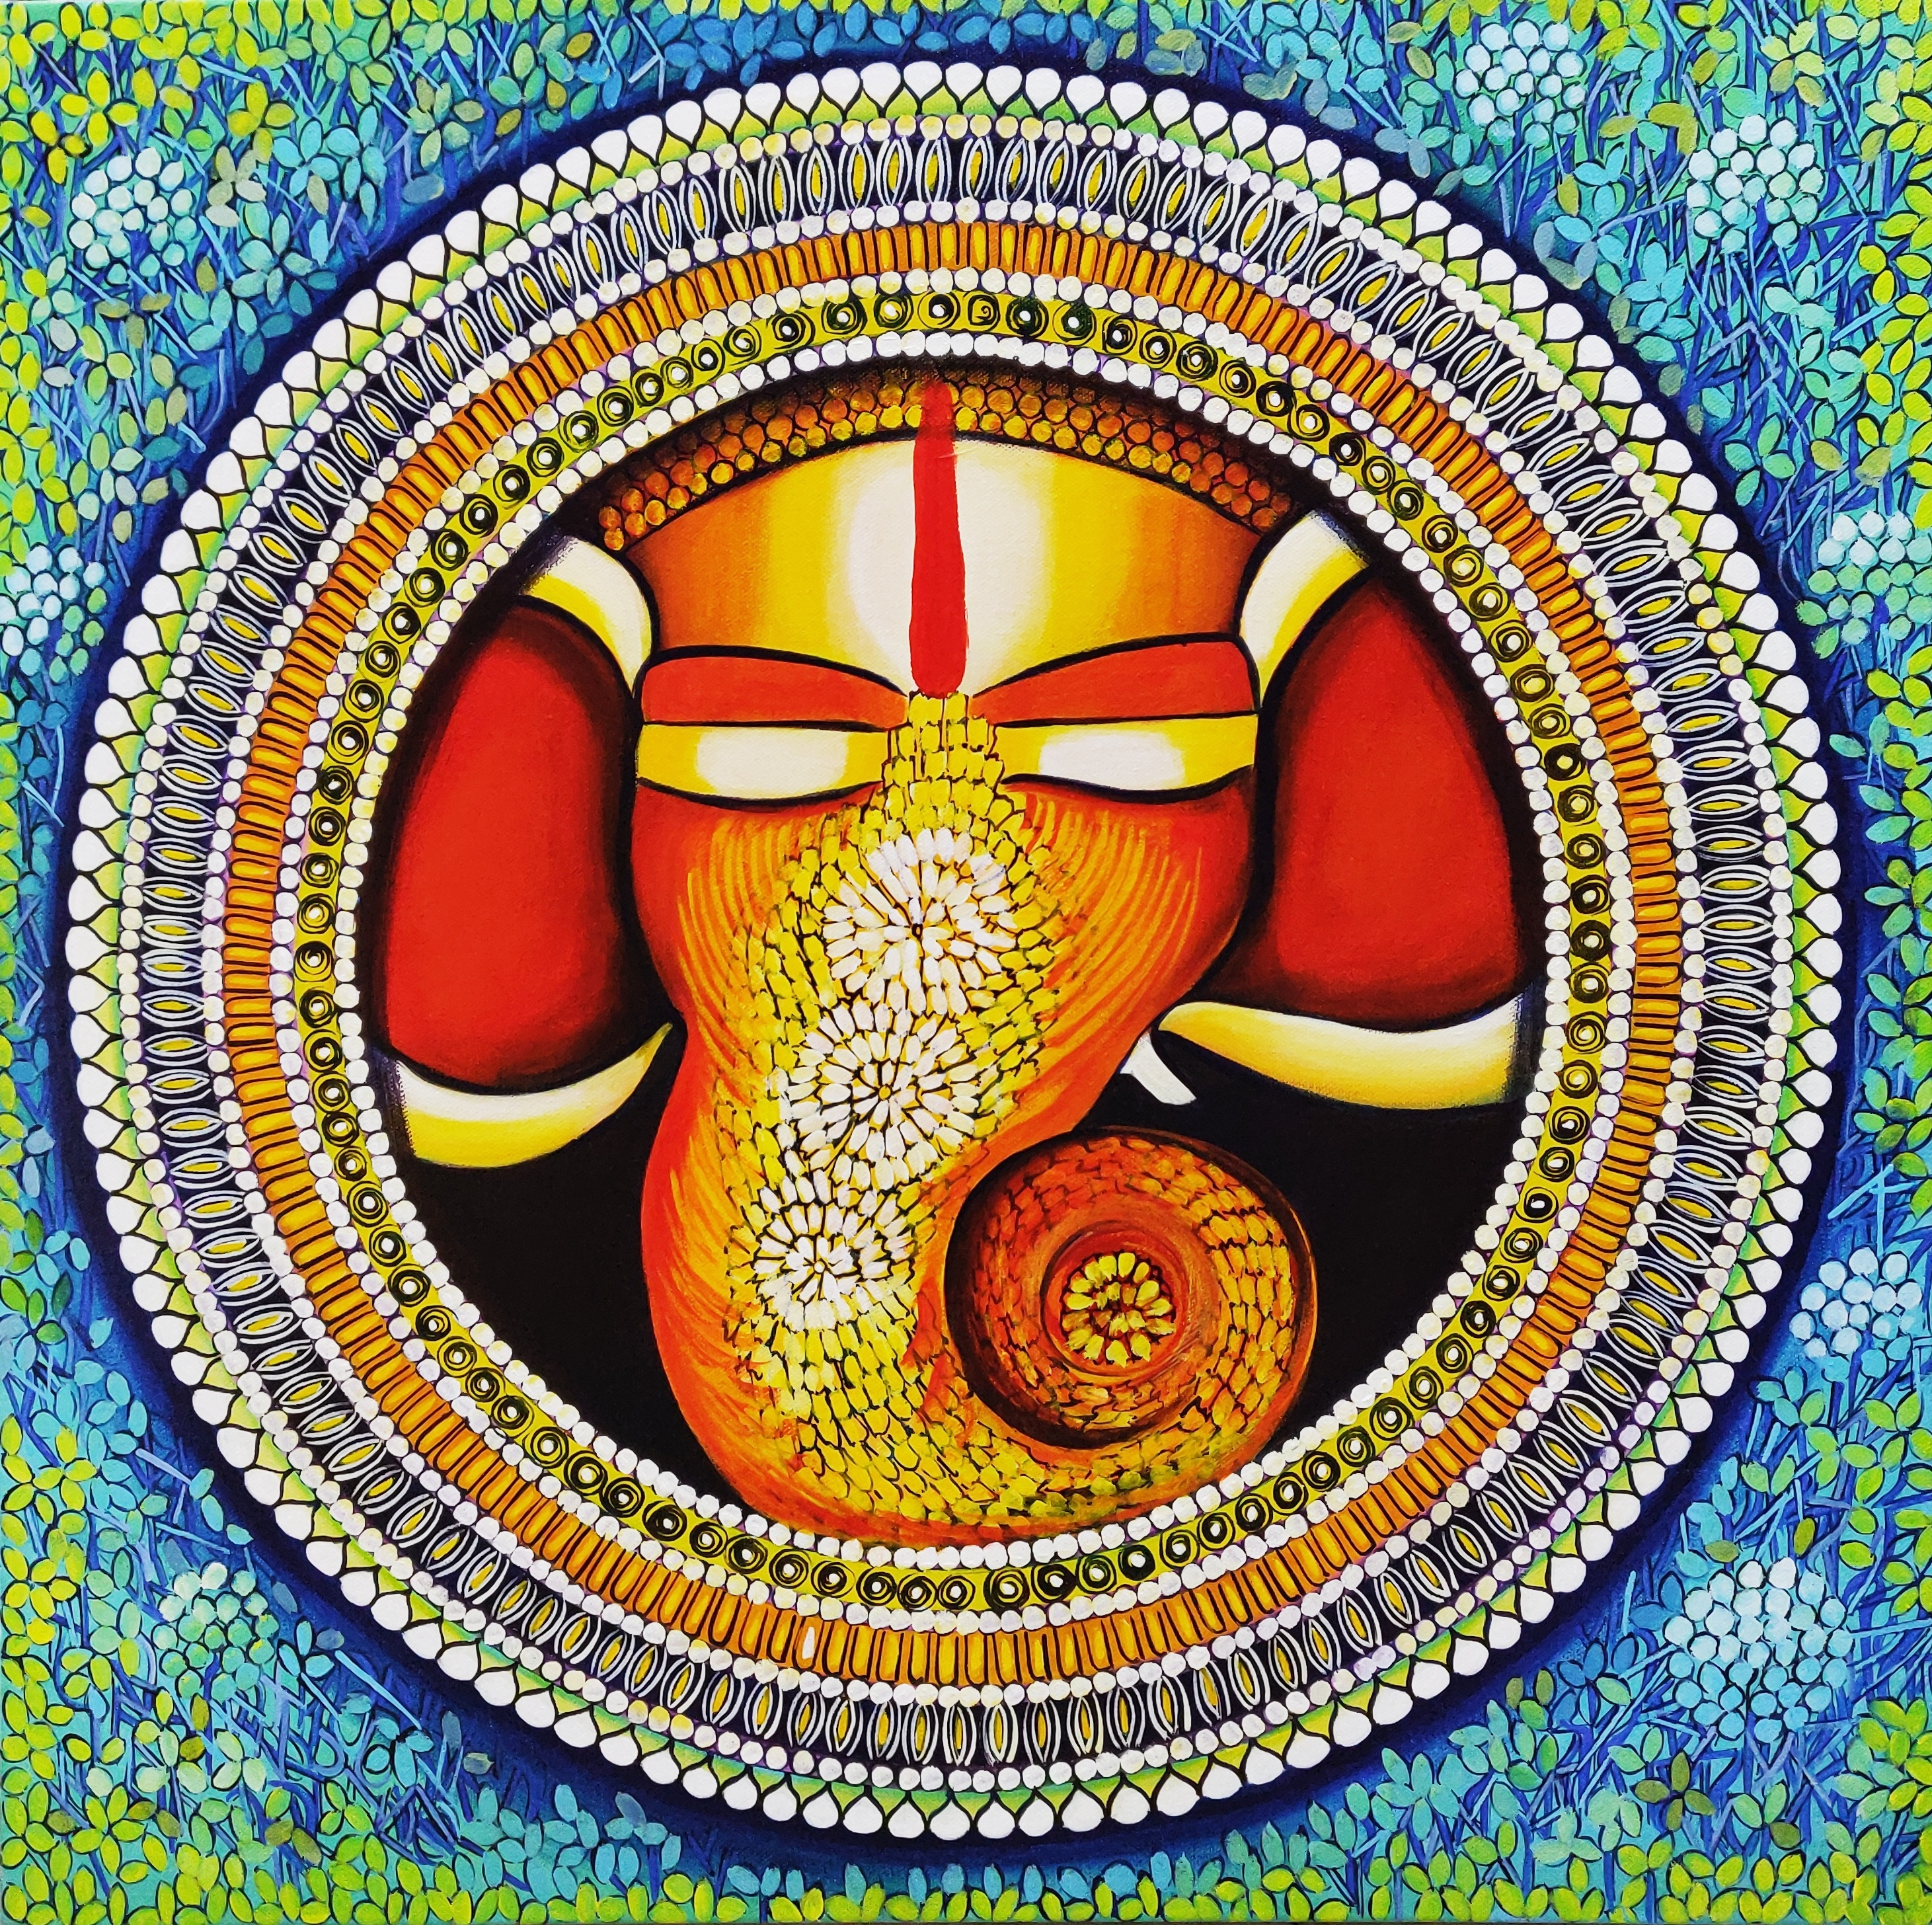 Ganesha - prosperity begins with the peace. 15079